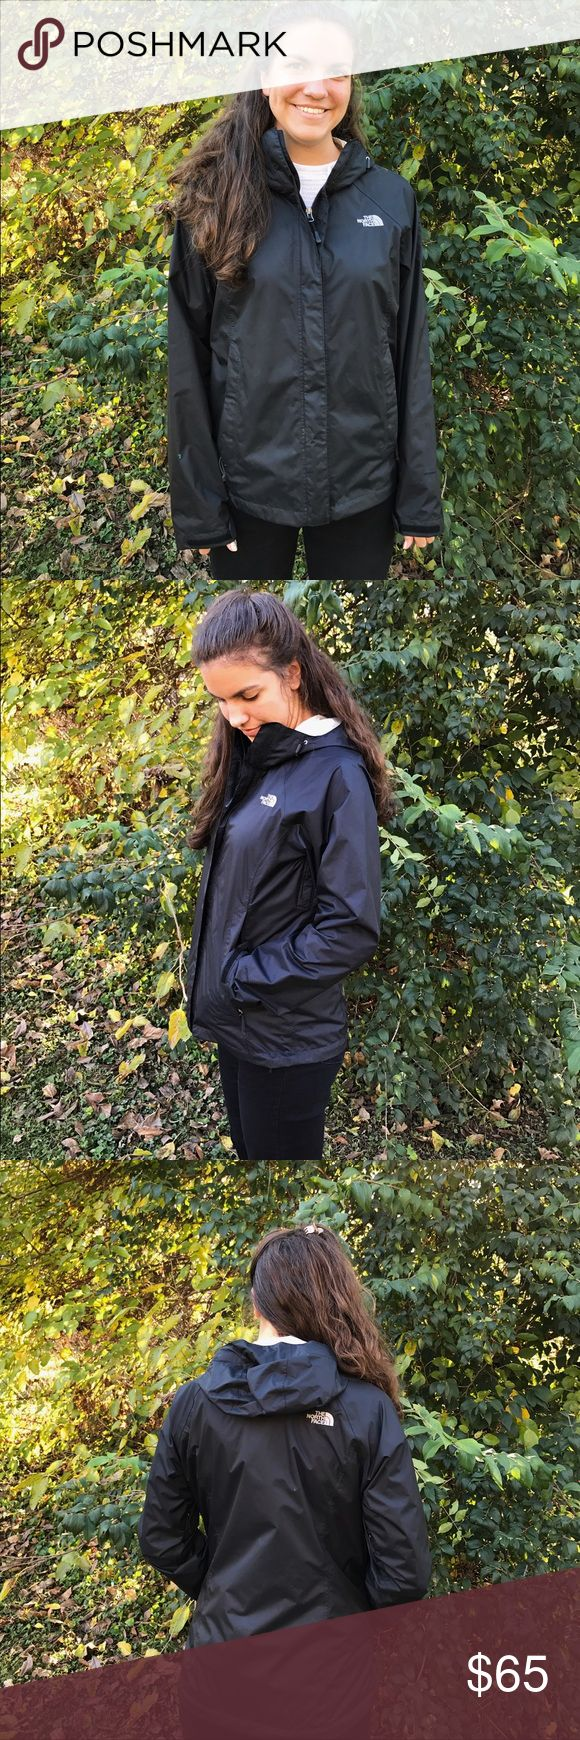 The North Face Women's Windbreaker This is wonderful lightweight jacket. It was worn once, but was the wrong size. Everything is in mint condition! The North Face Jackets & Coats Utility Jackets